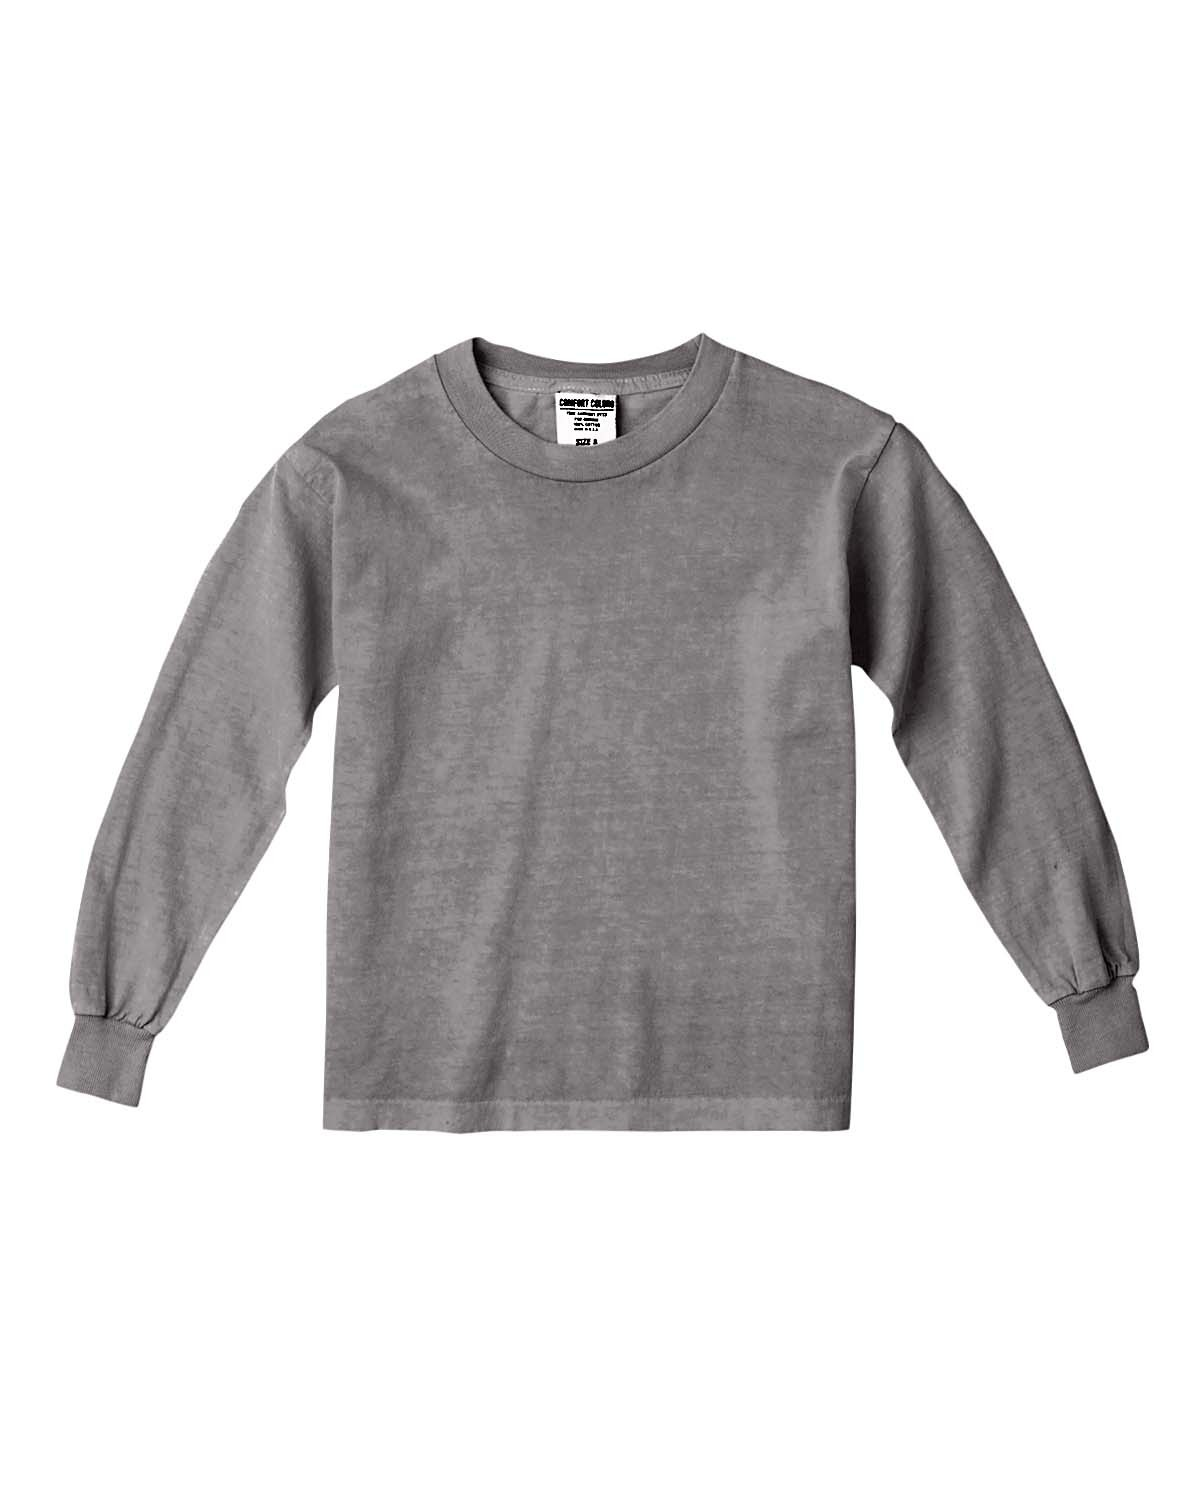 C3483 Comfort Colors Drop Ship GREY